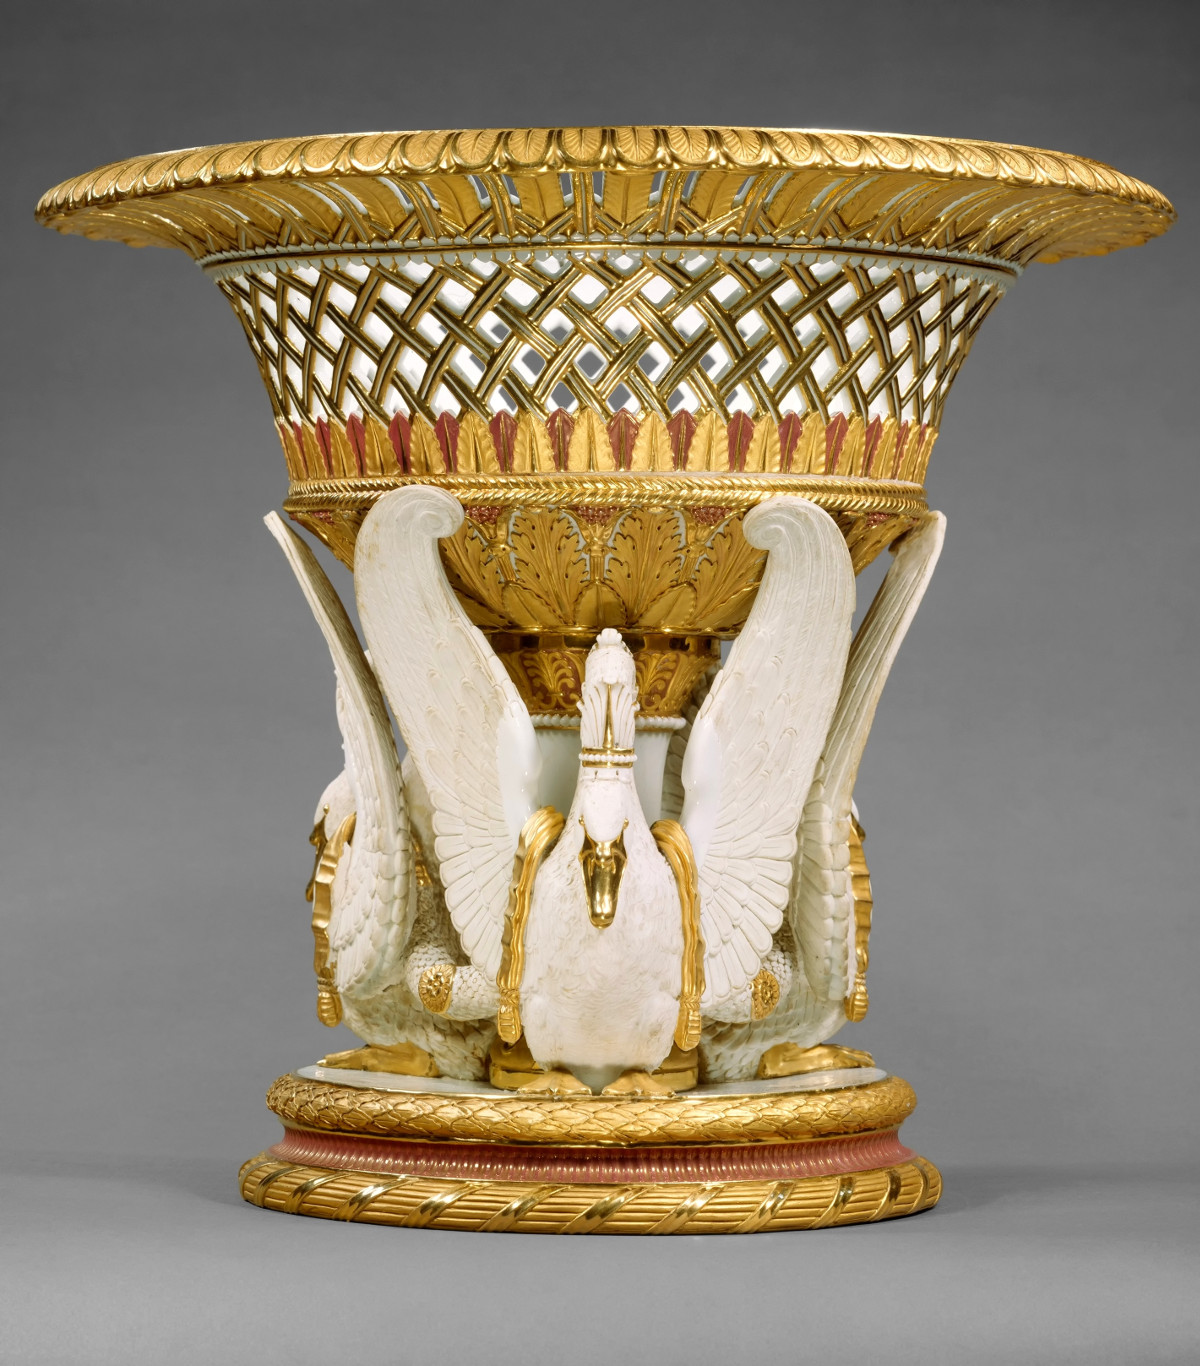 1823 Fruit or flower basket. Hard-paste porcelain. metmuseum